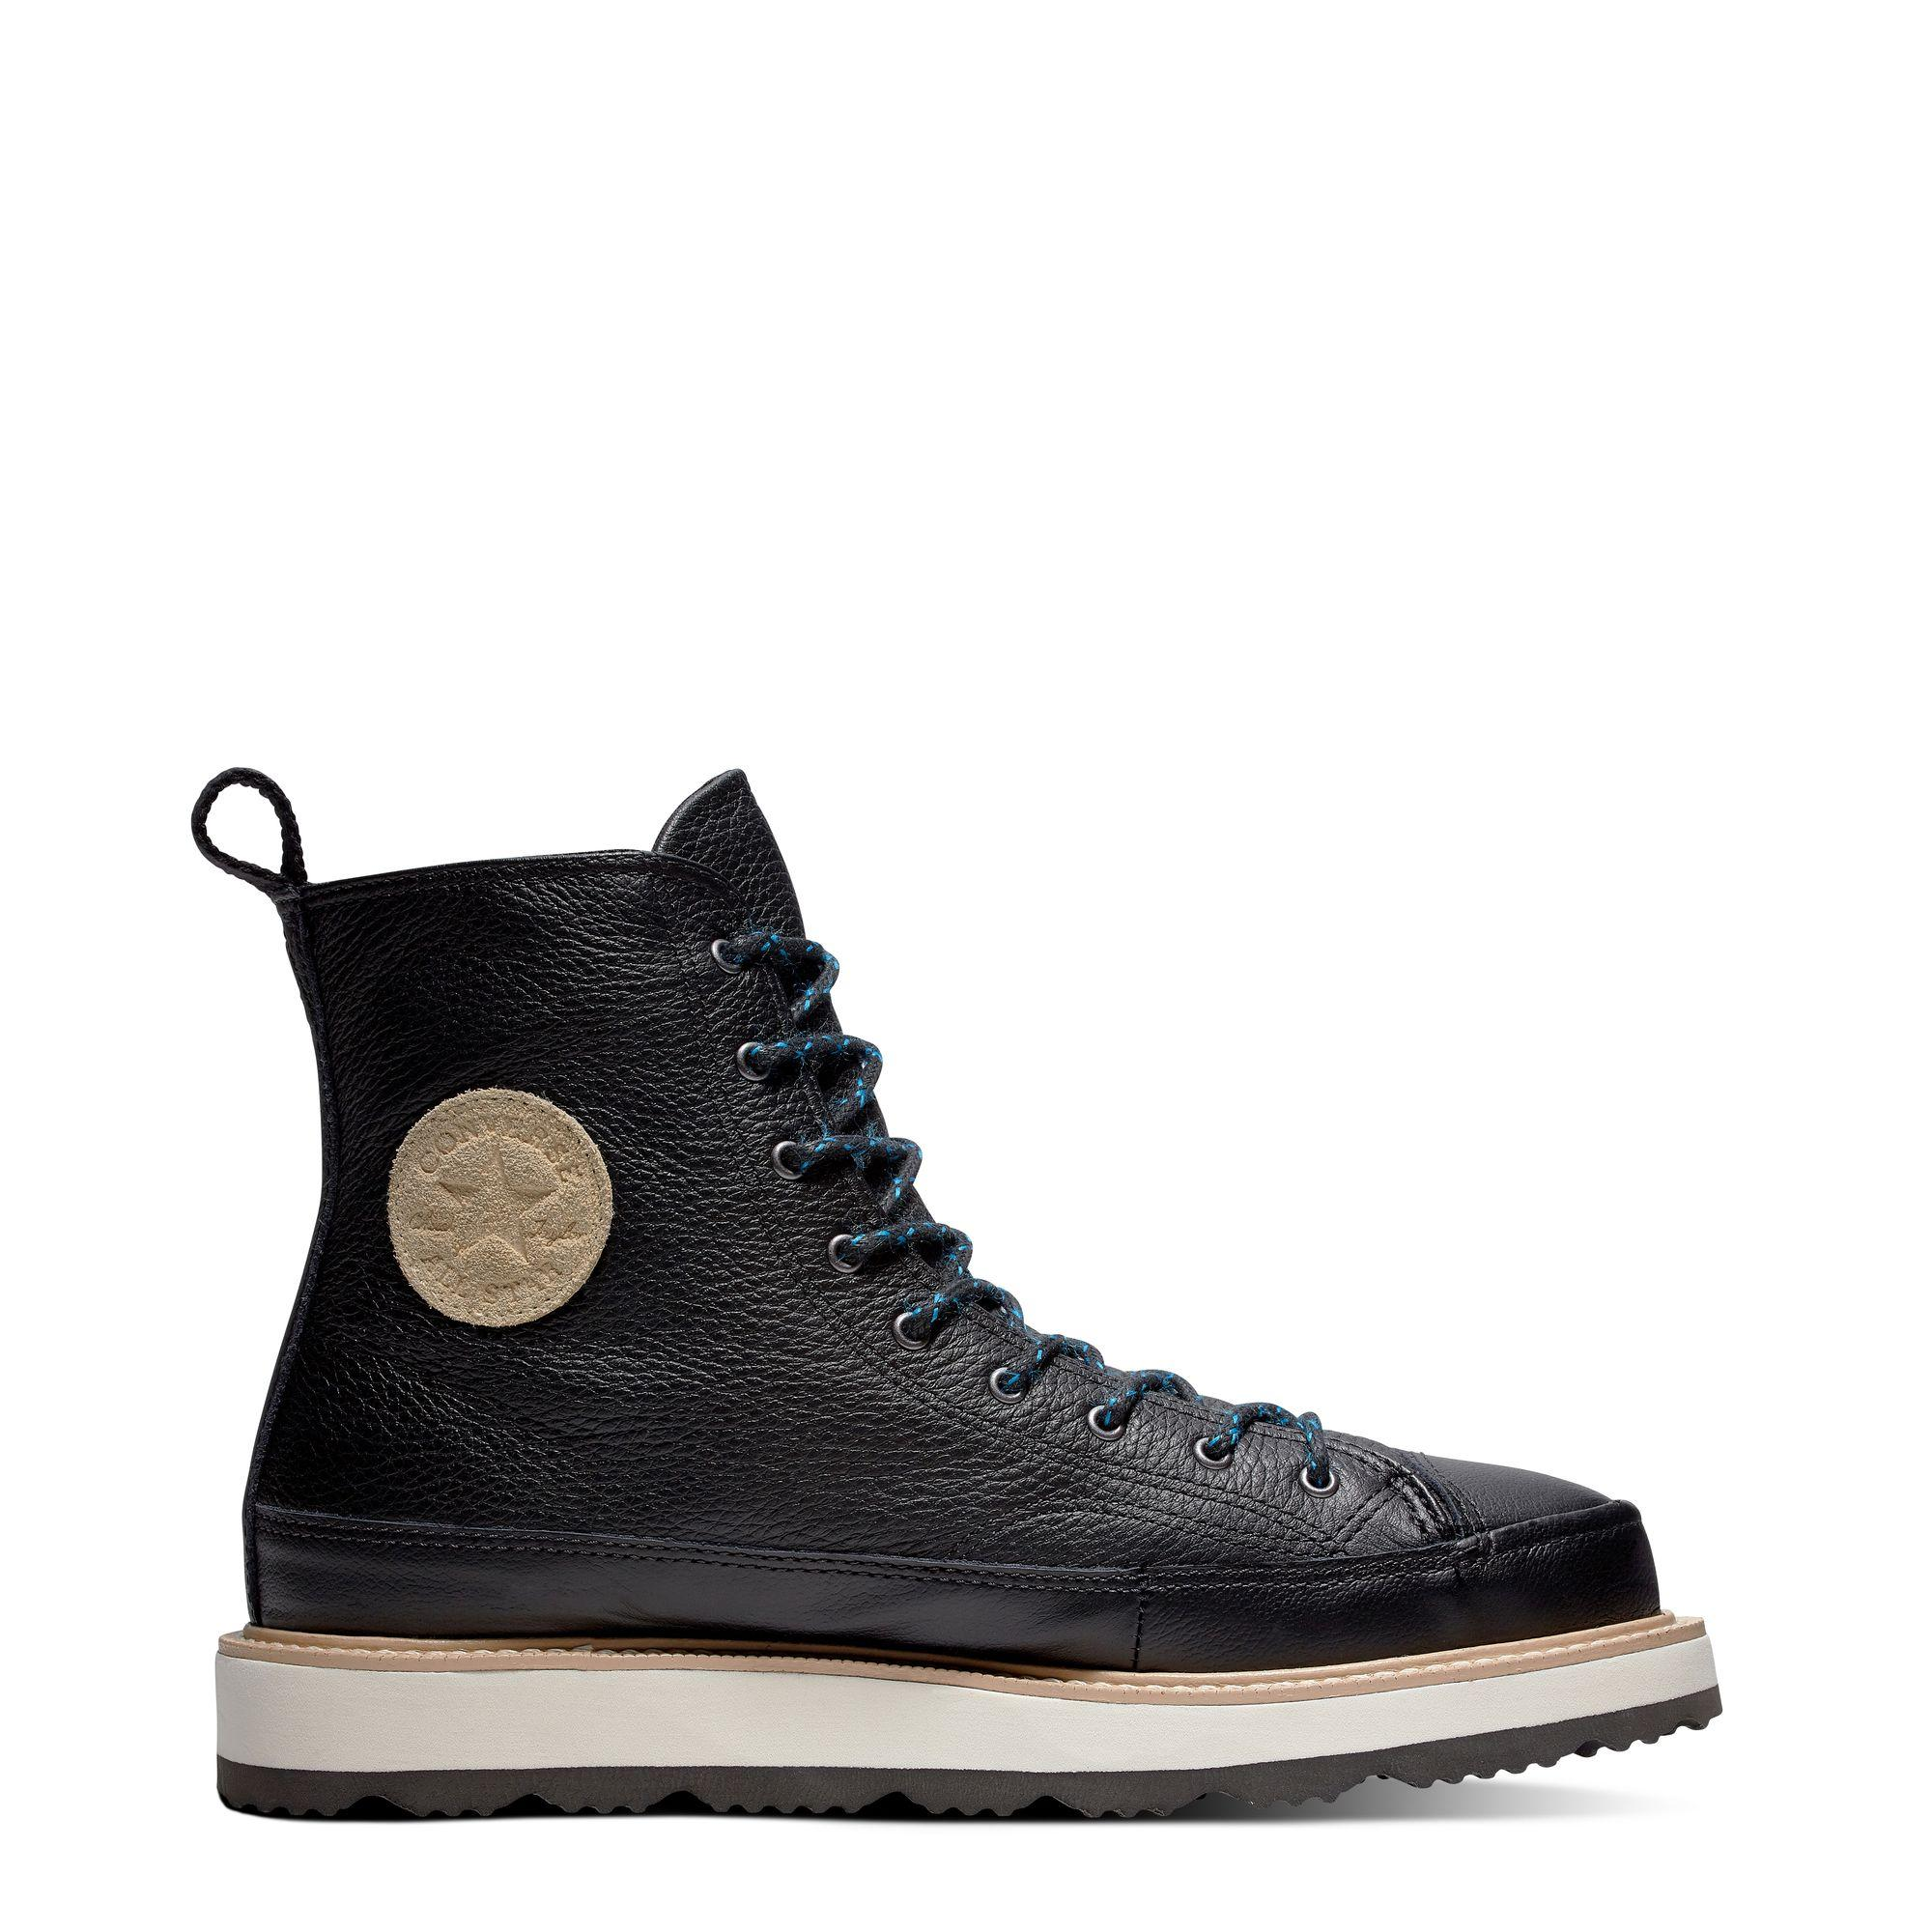 CONVERSE CHUCK TAYLOR CRAFTED BOOT - HITAM - CON162355C